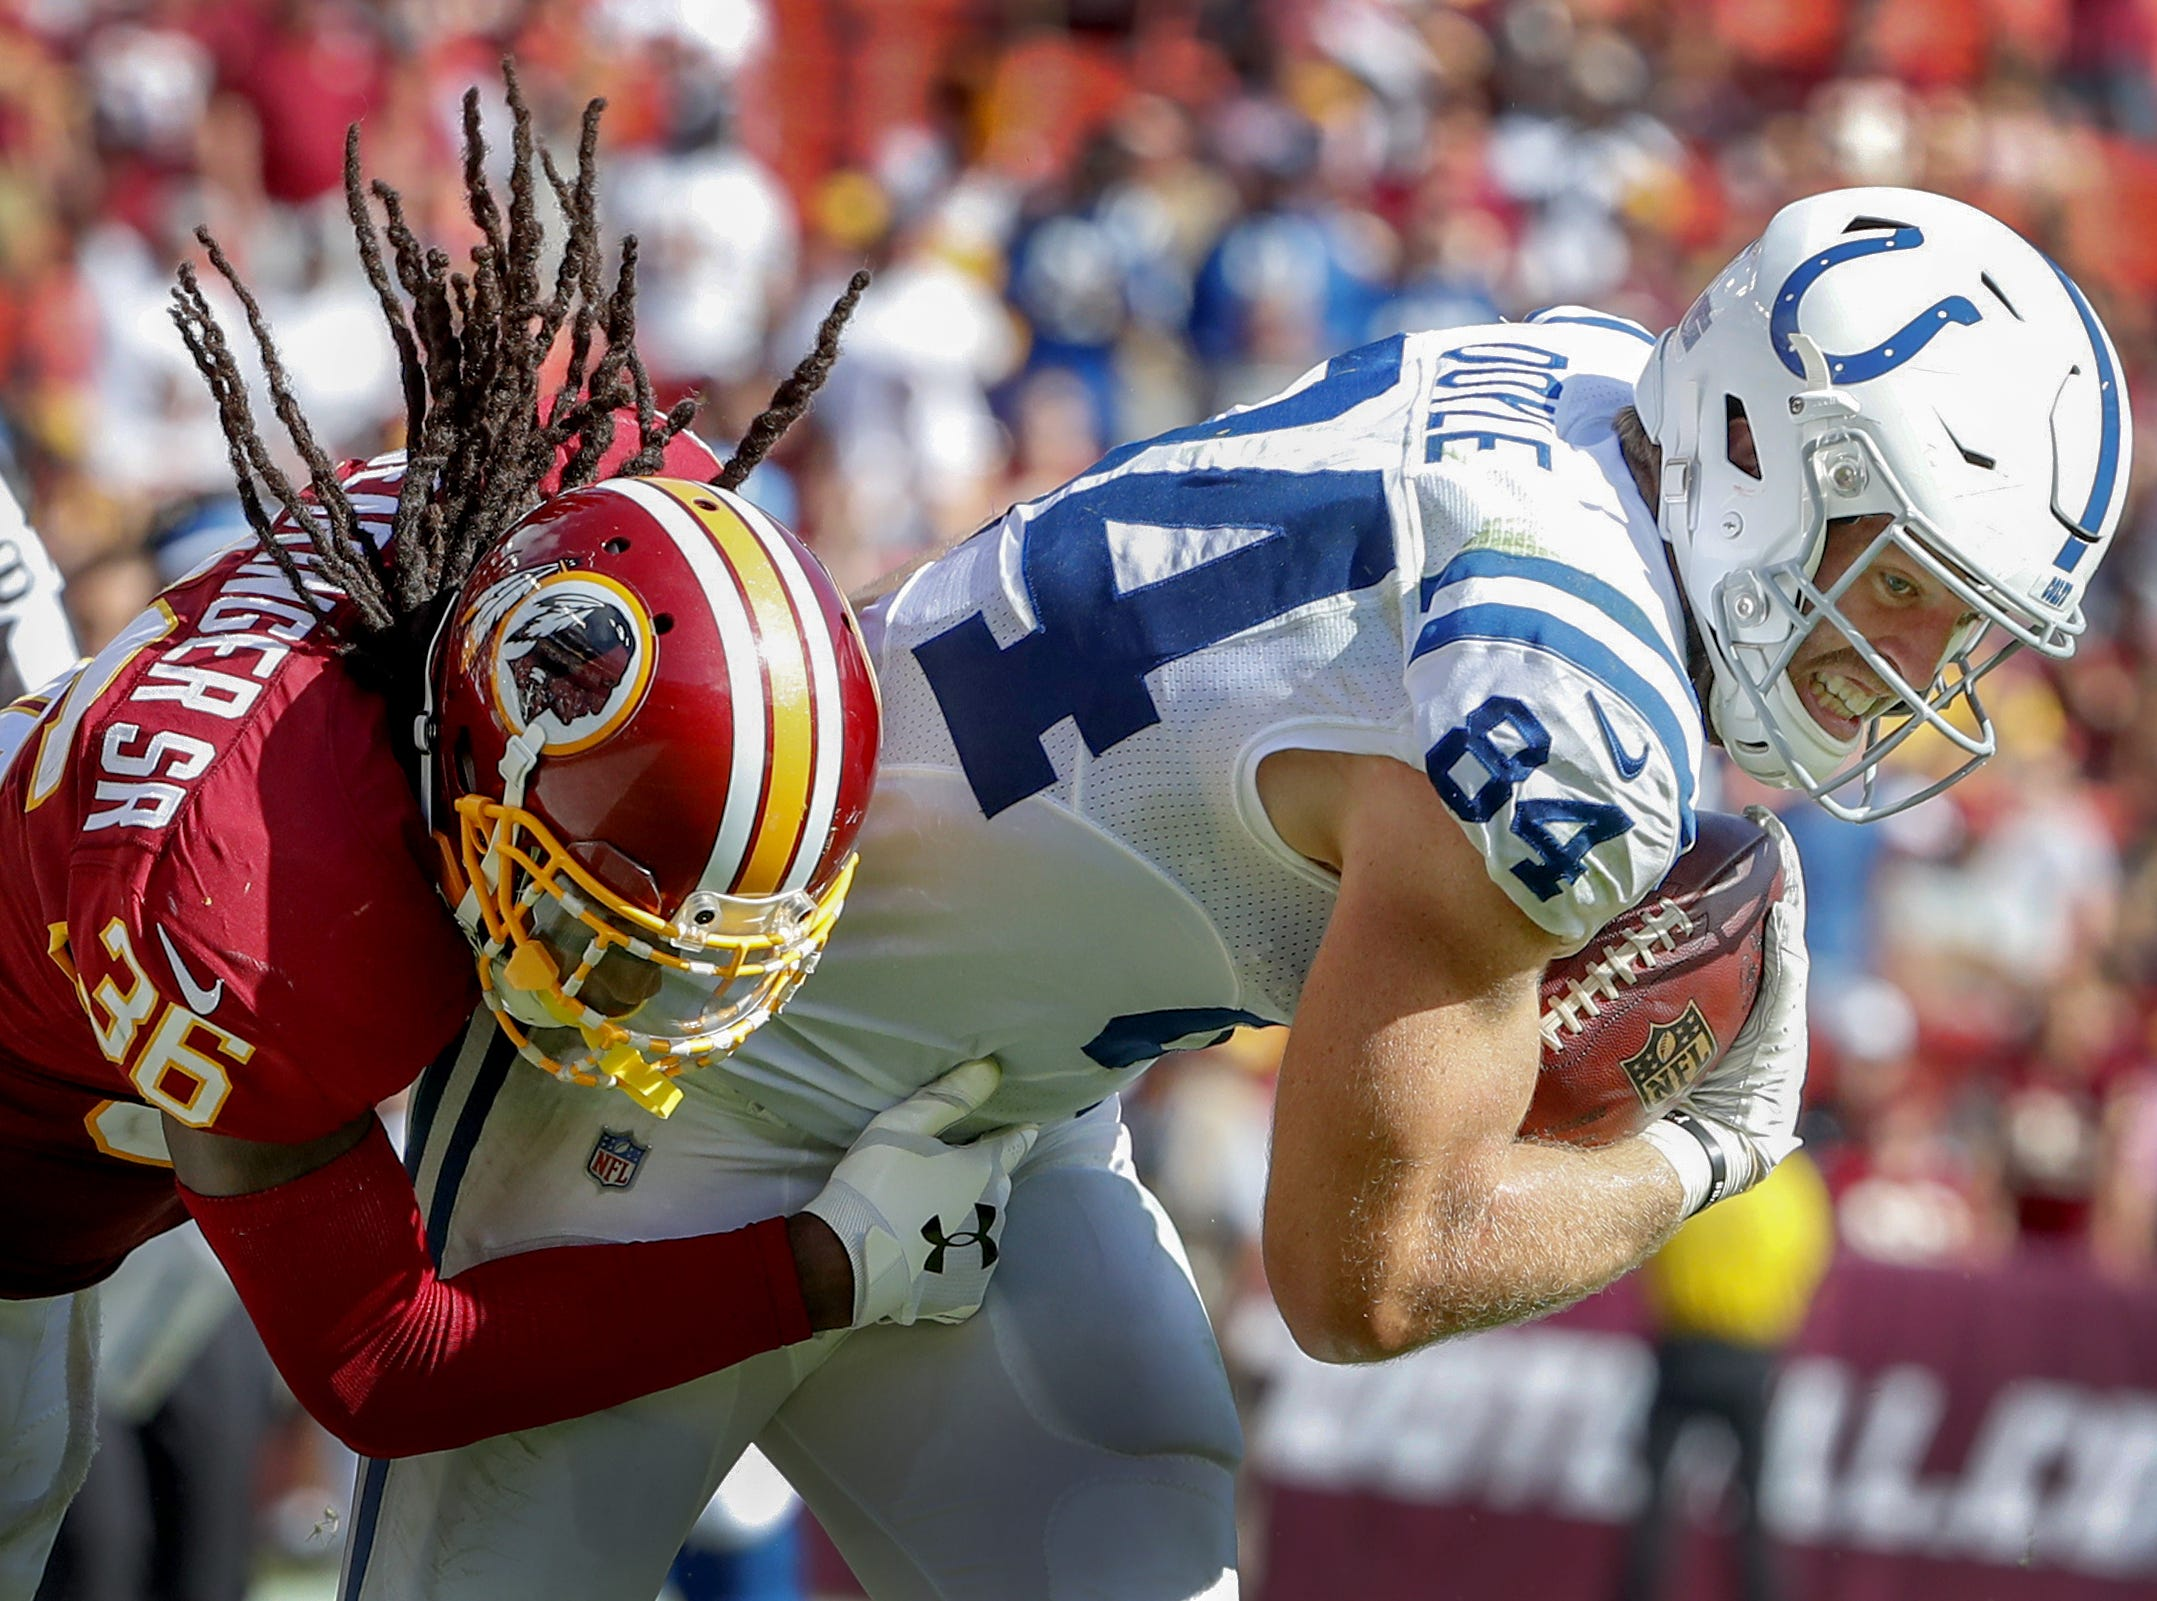 Indianapolis Colts tight end Jack Doyle (84) is pulled down by Washington Redskins defensive back D.J. Swearinger (36) in the second half of their game at FedEx Field in Landover MD. on Sunday, Sept. 16, 2018.